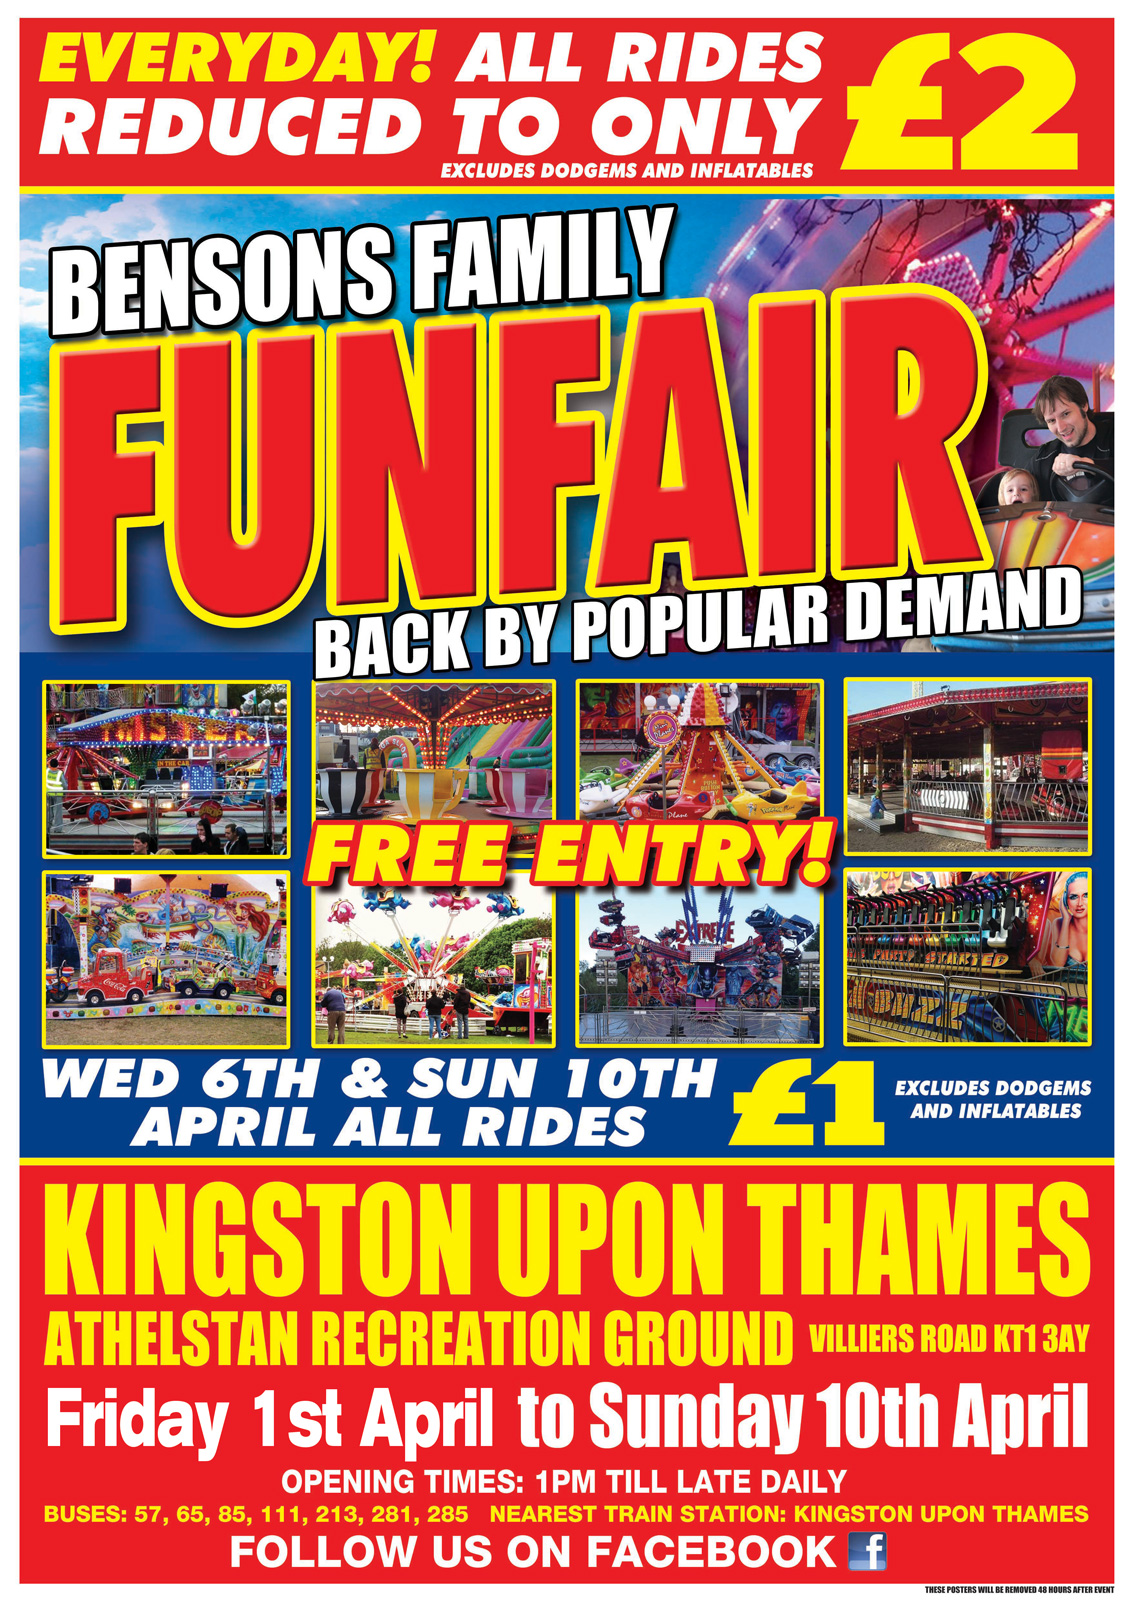 Kingston-Upon-Thames-Fun-Fair-Revised-Image